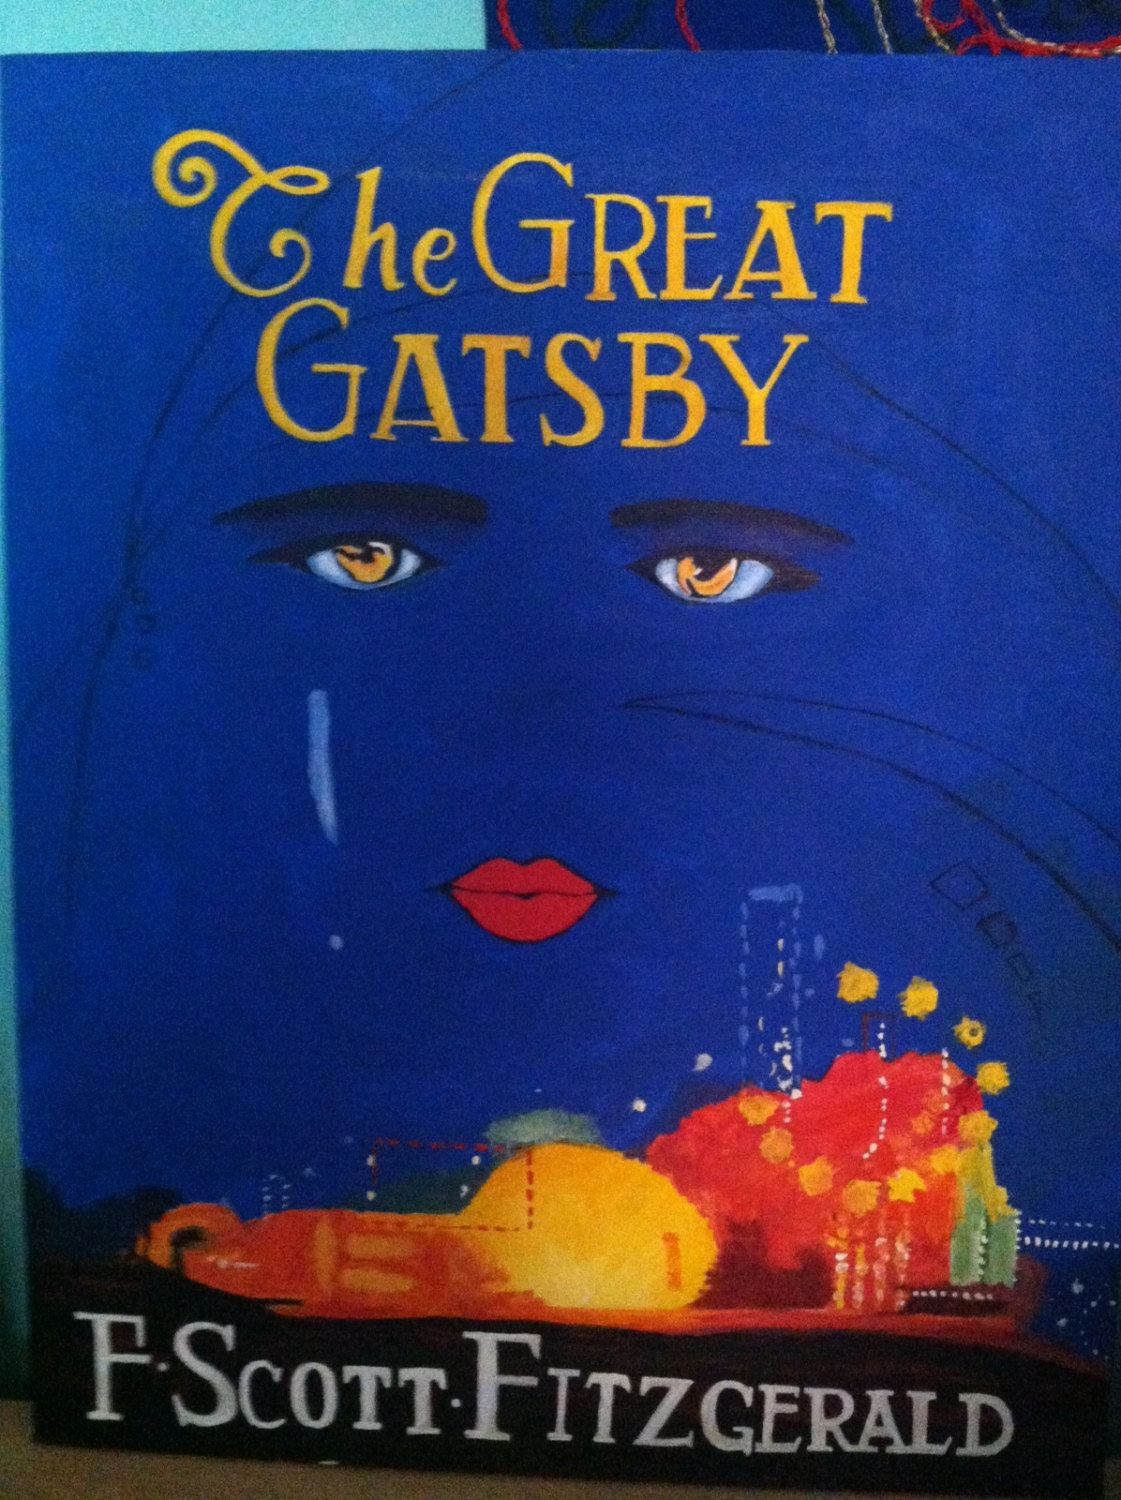 The Great Gatsby Iconic Book Cover Reproduction By